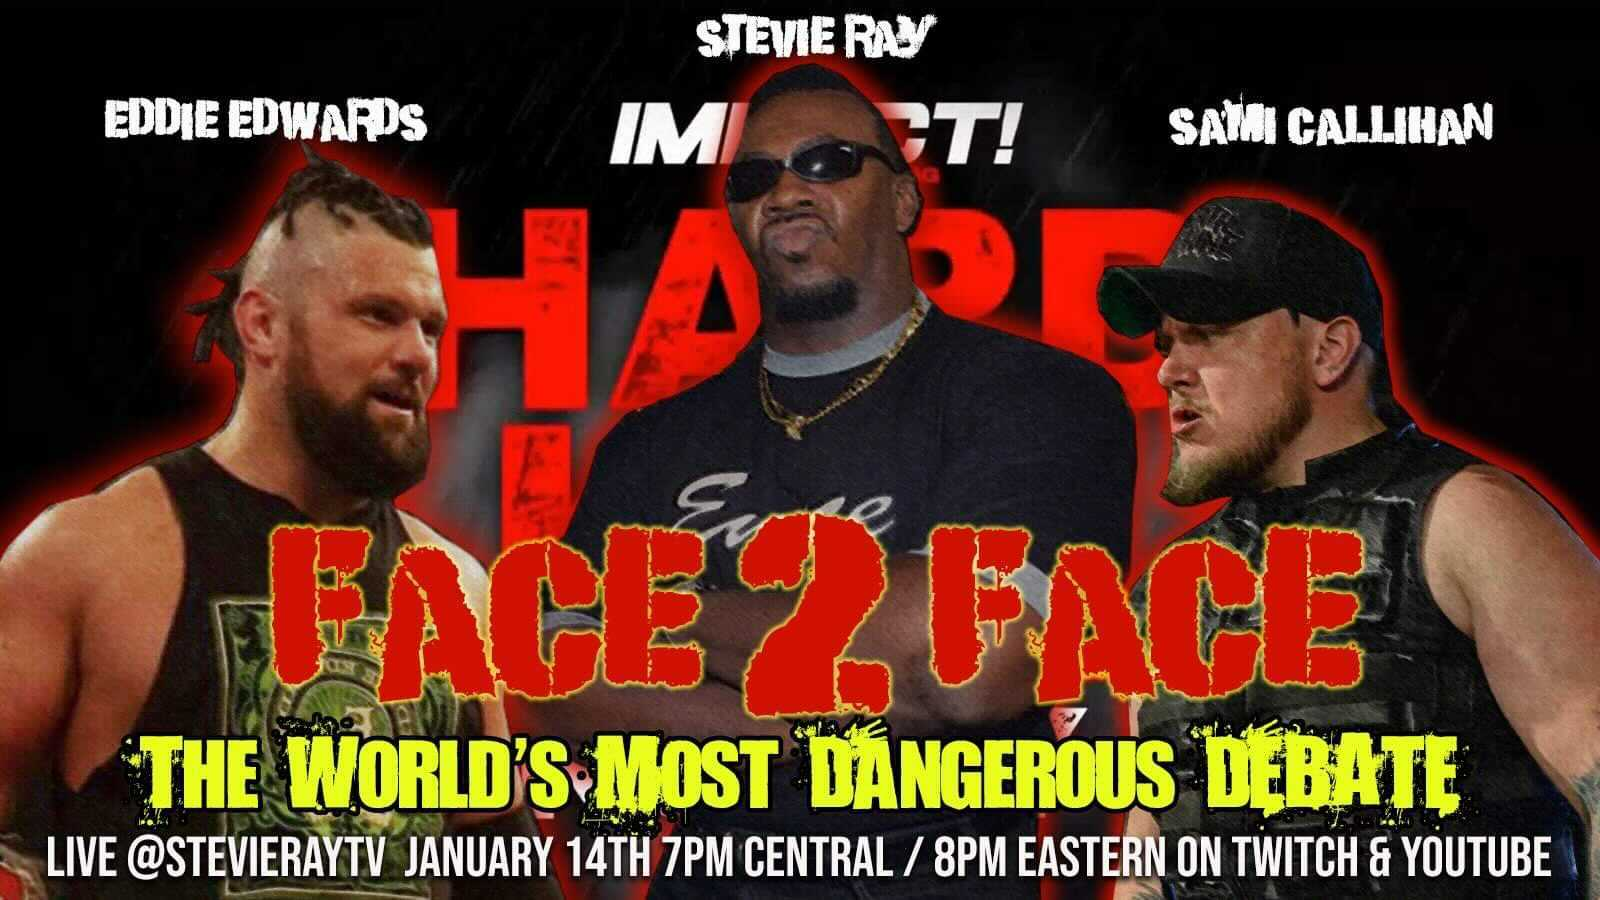 Sami Callihan & Eddie Edwards Appear on Face 2 Face Hosted by Stevie Ray – IMPACT Wrestling